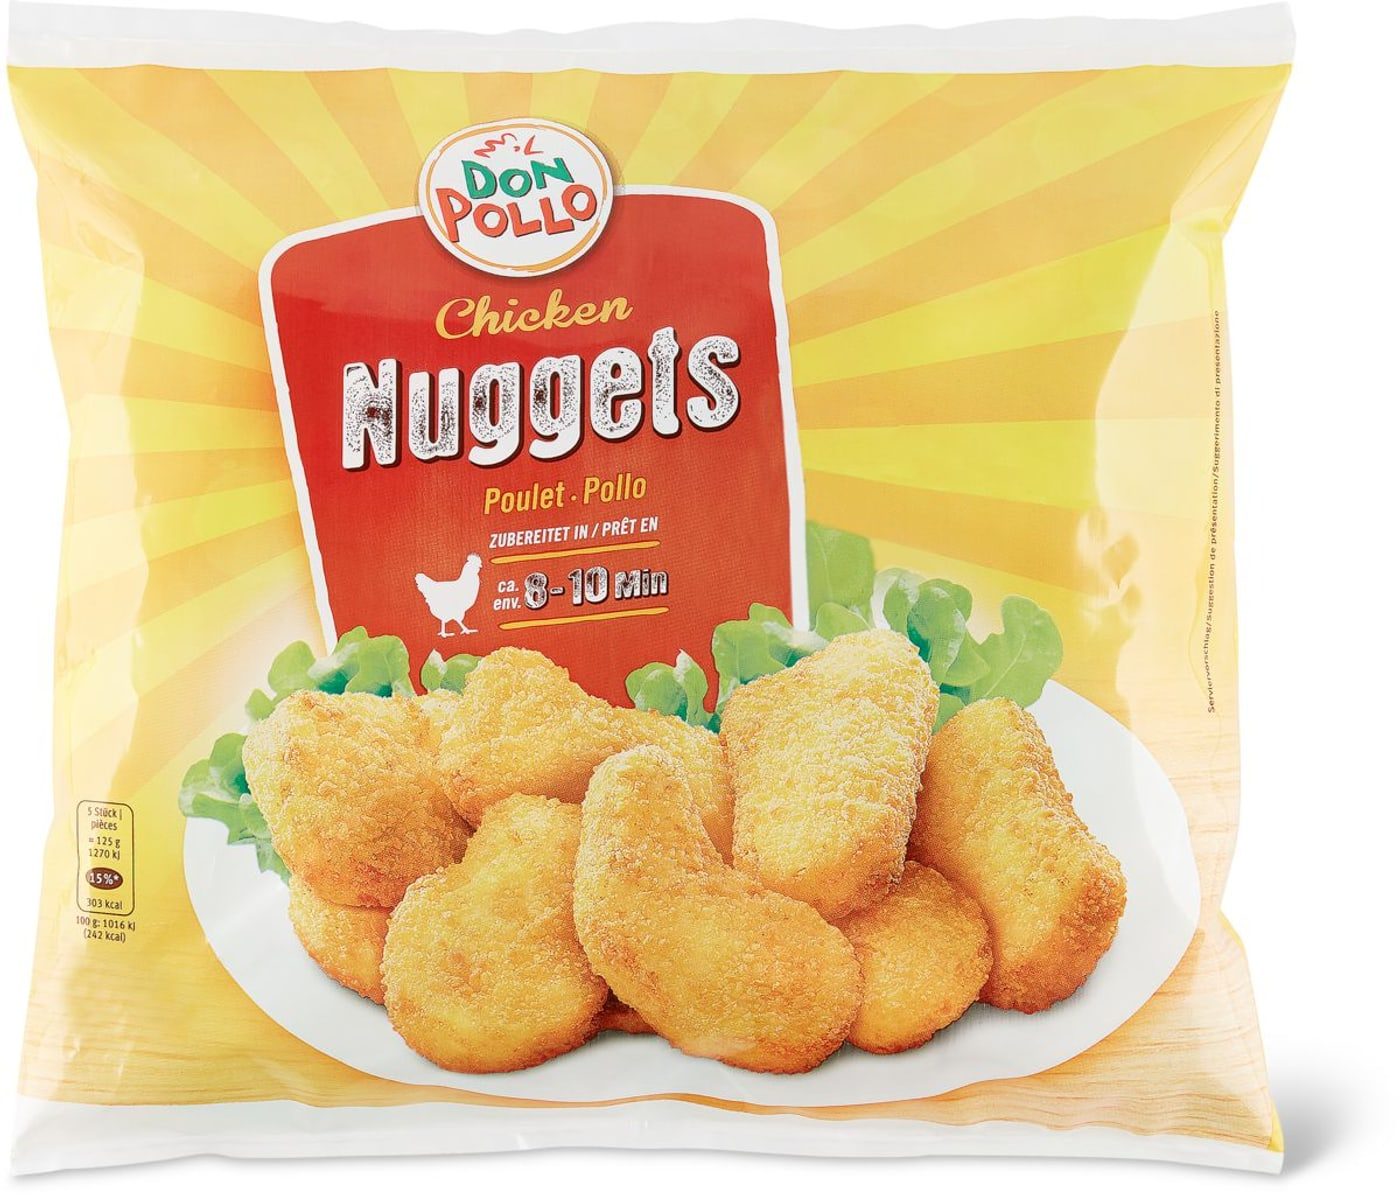 Nuggets Kcal: Don Pollo Chicken Nuggets